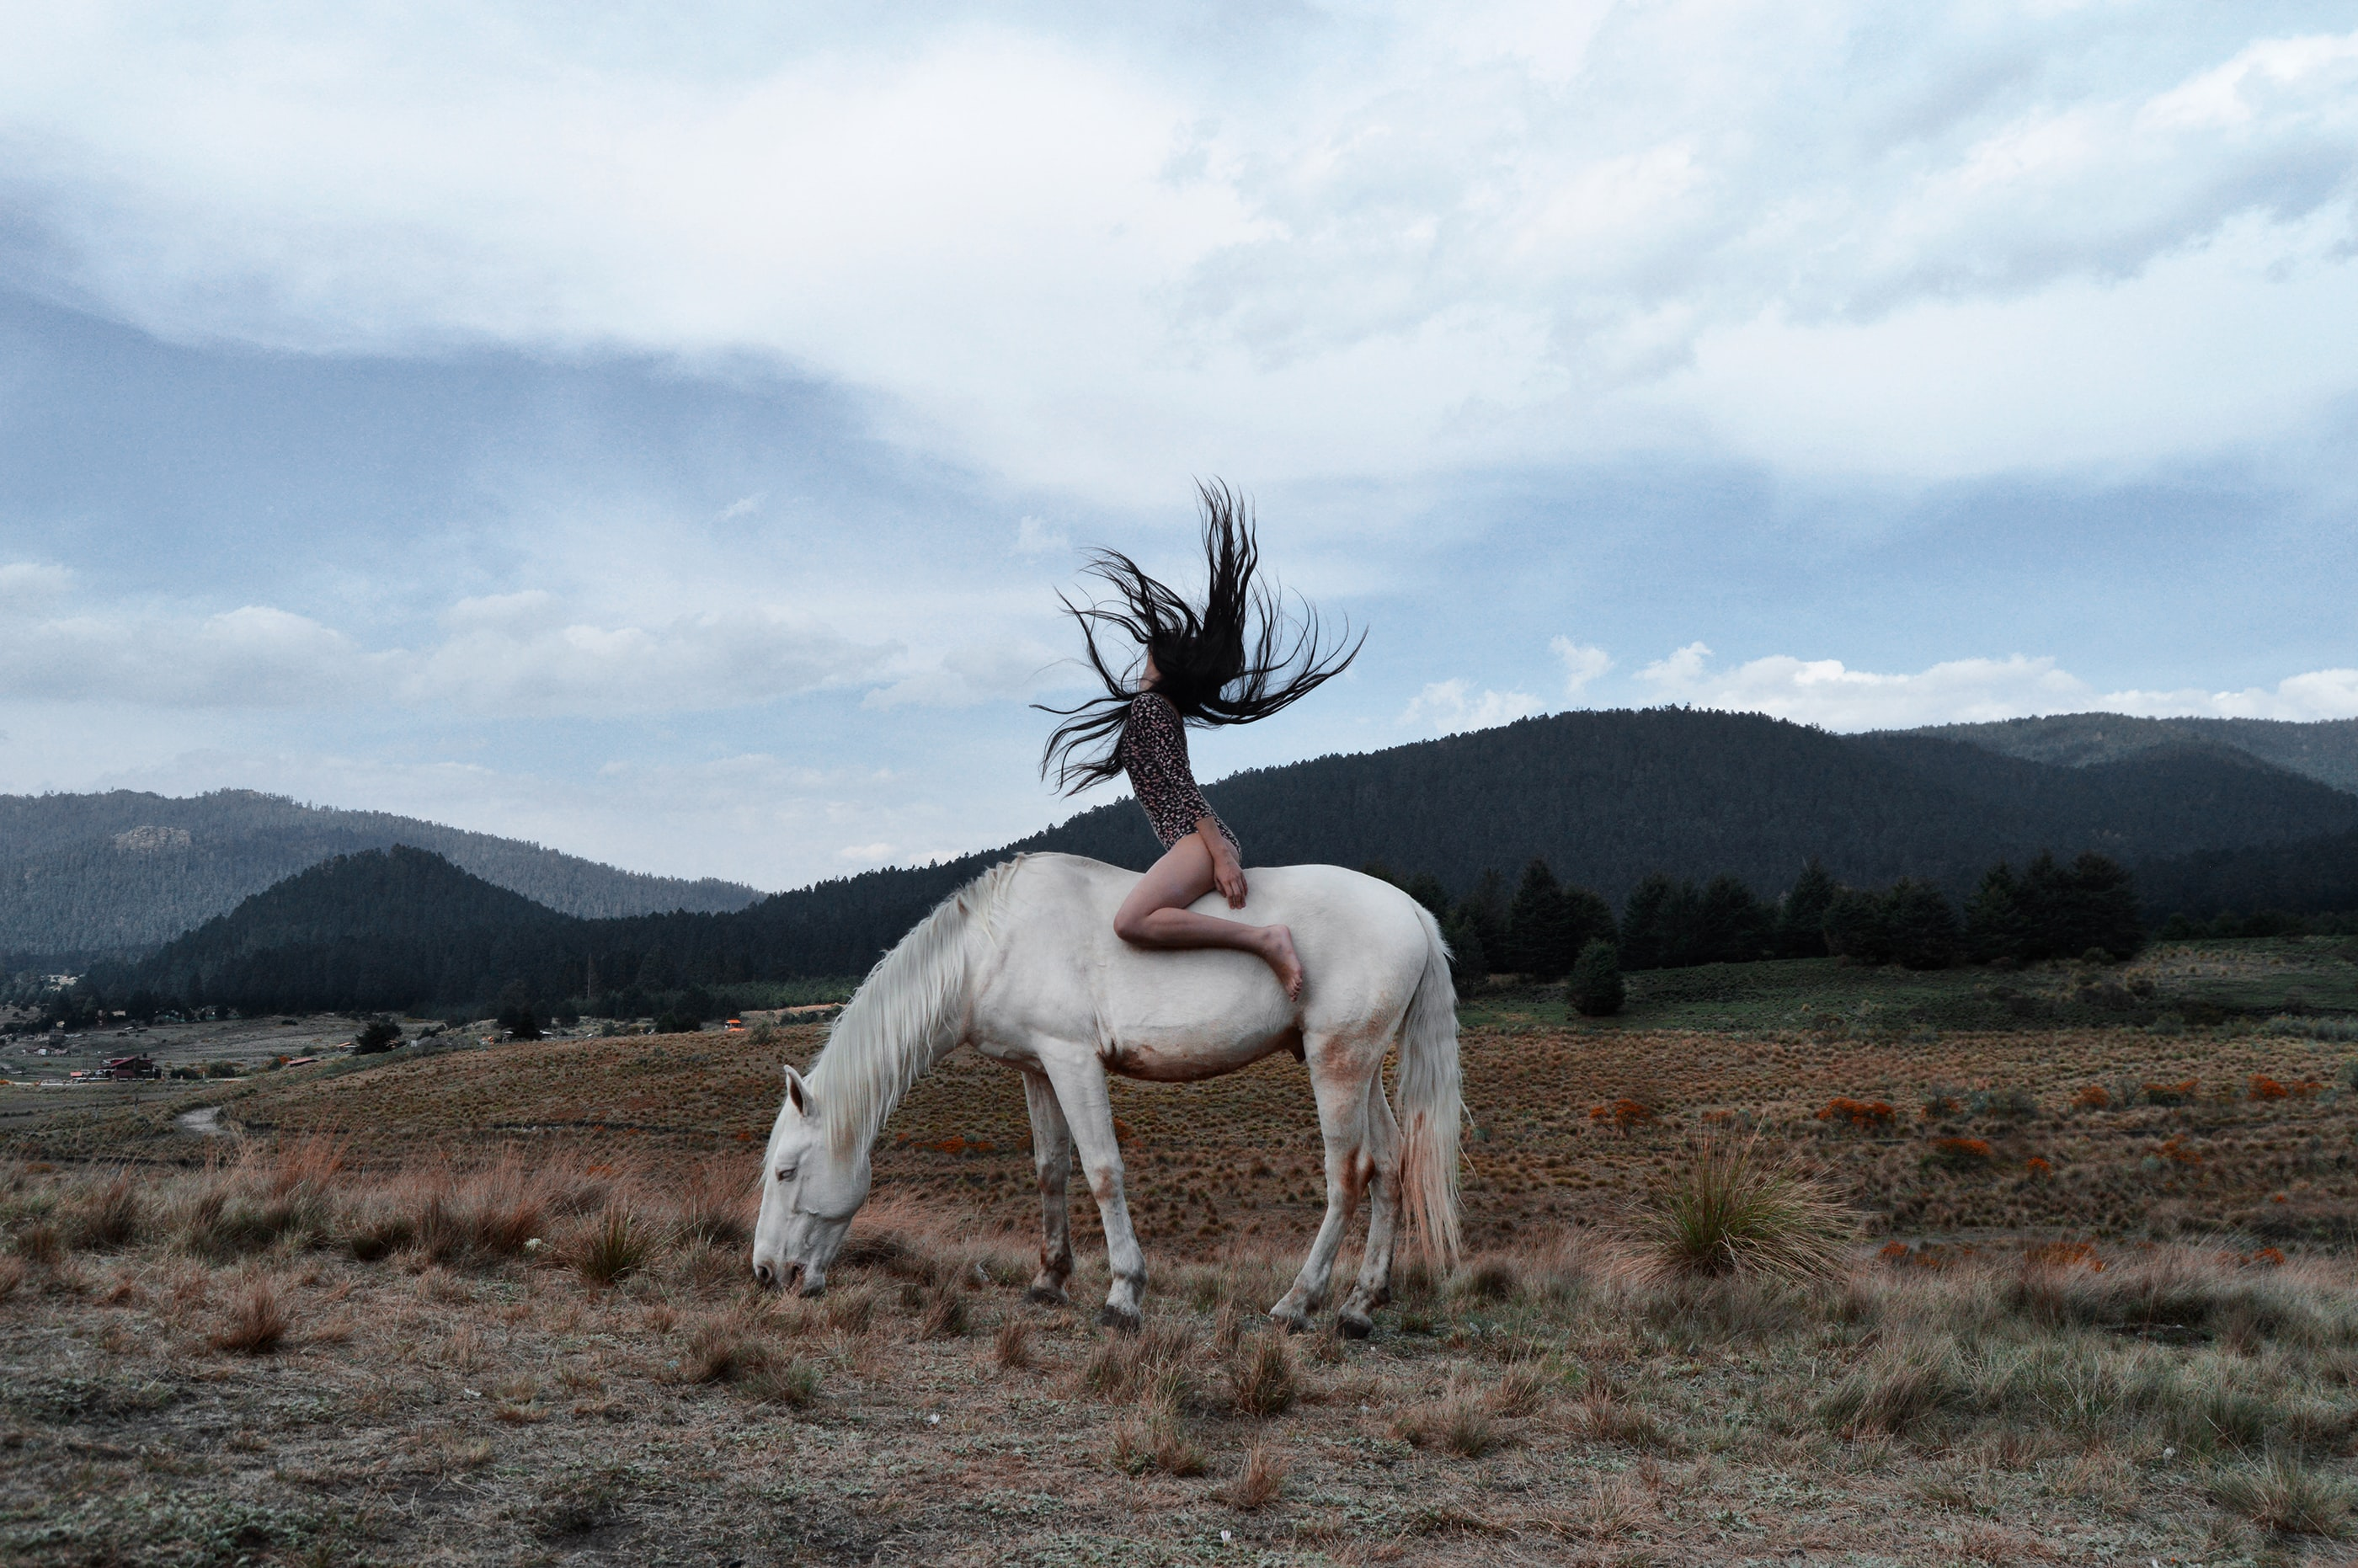 A dark-haired woman throwing her head back on a white horse her head back